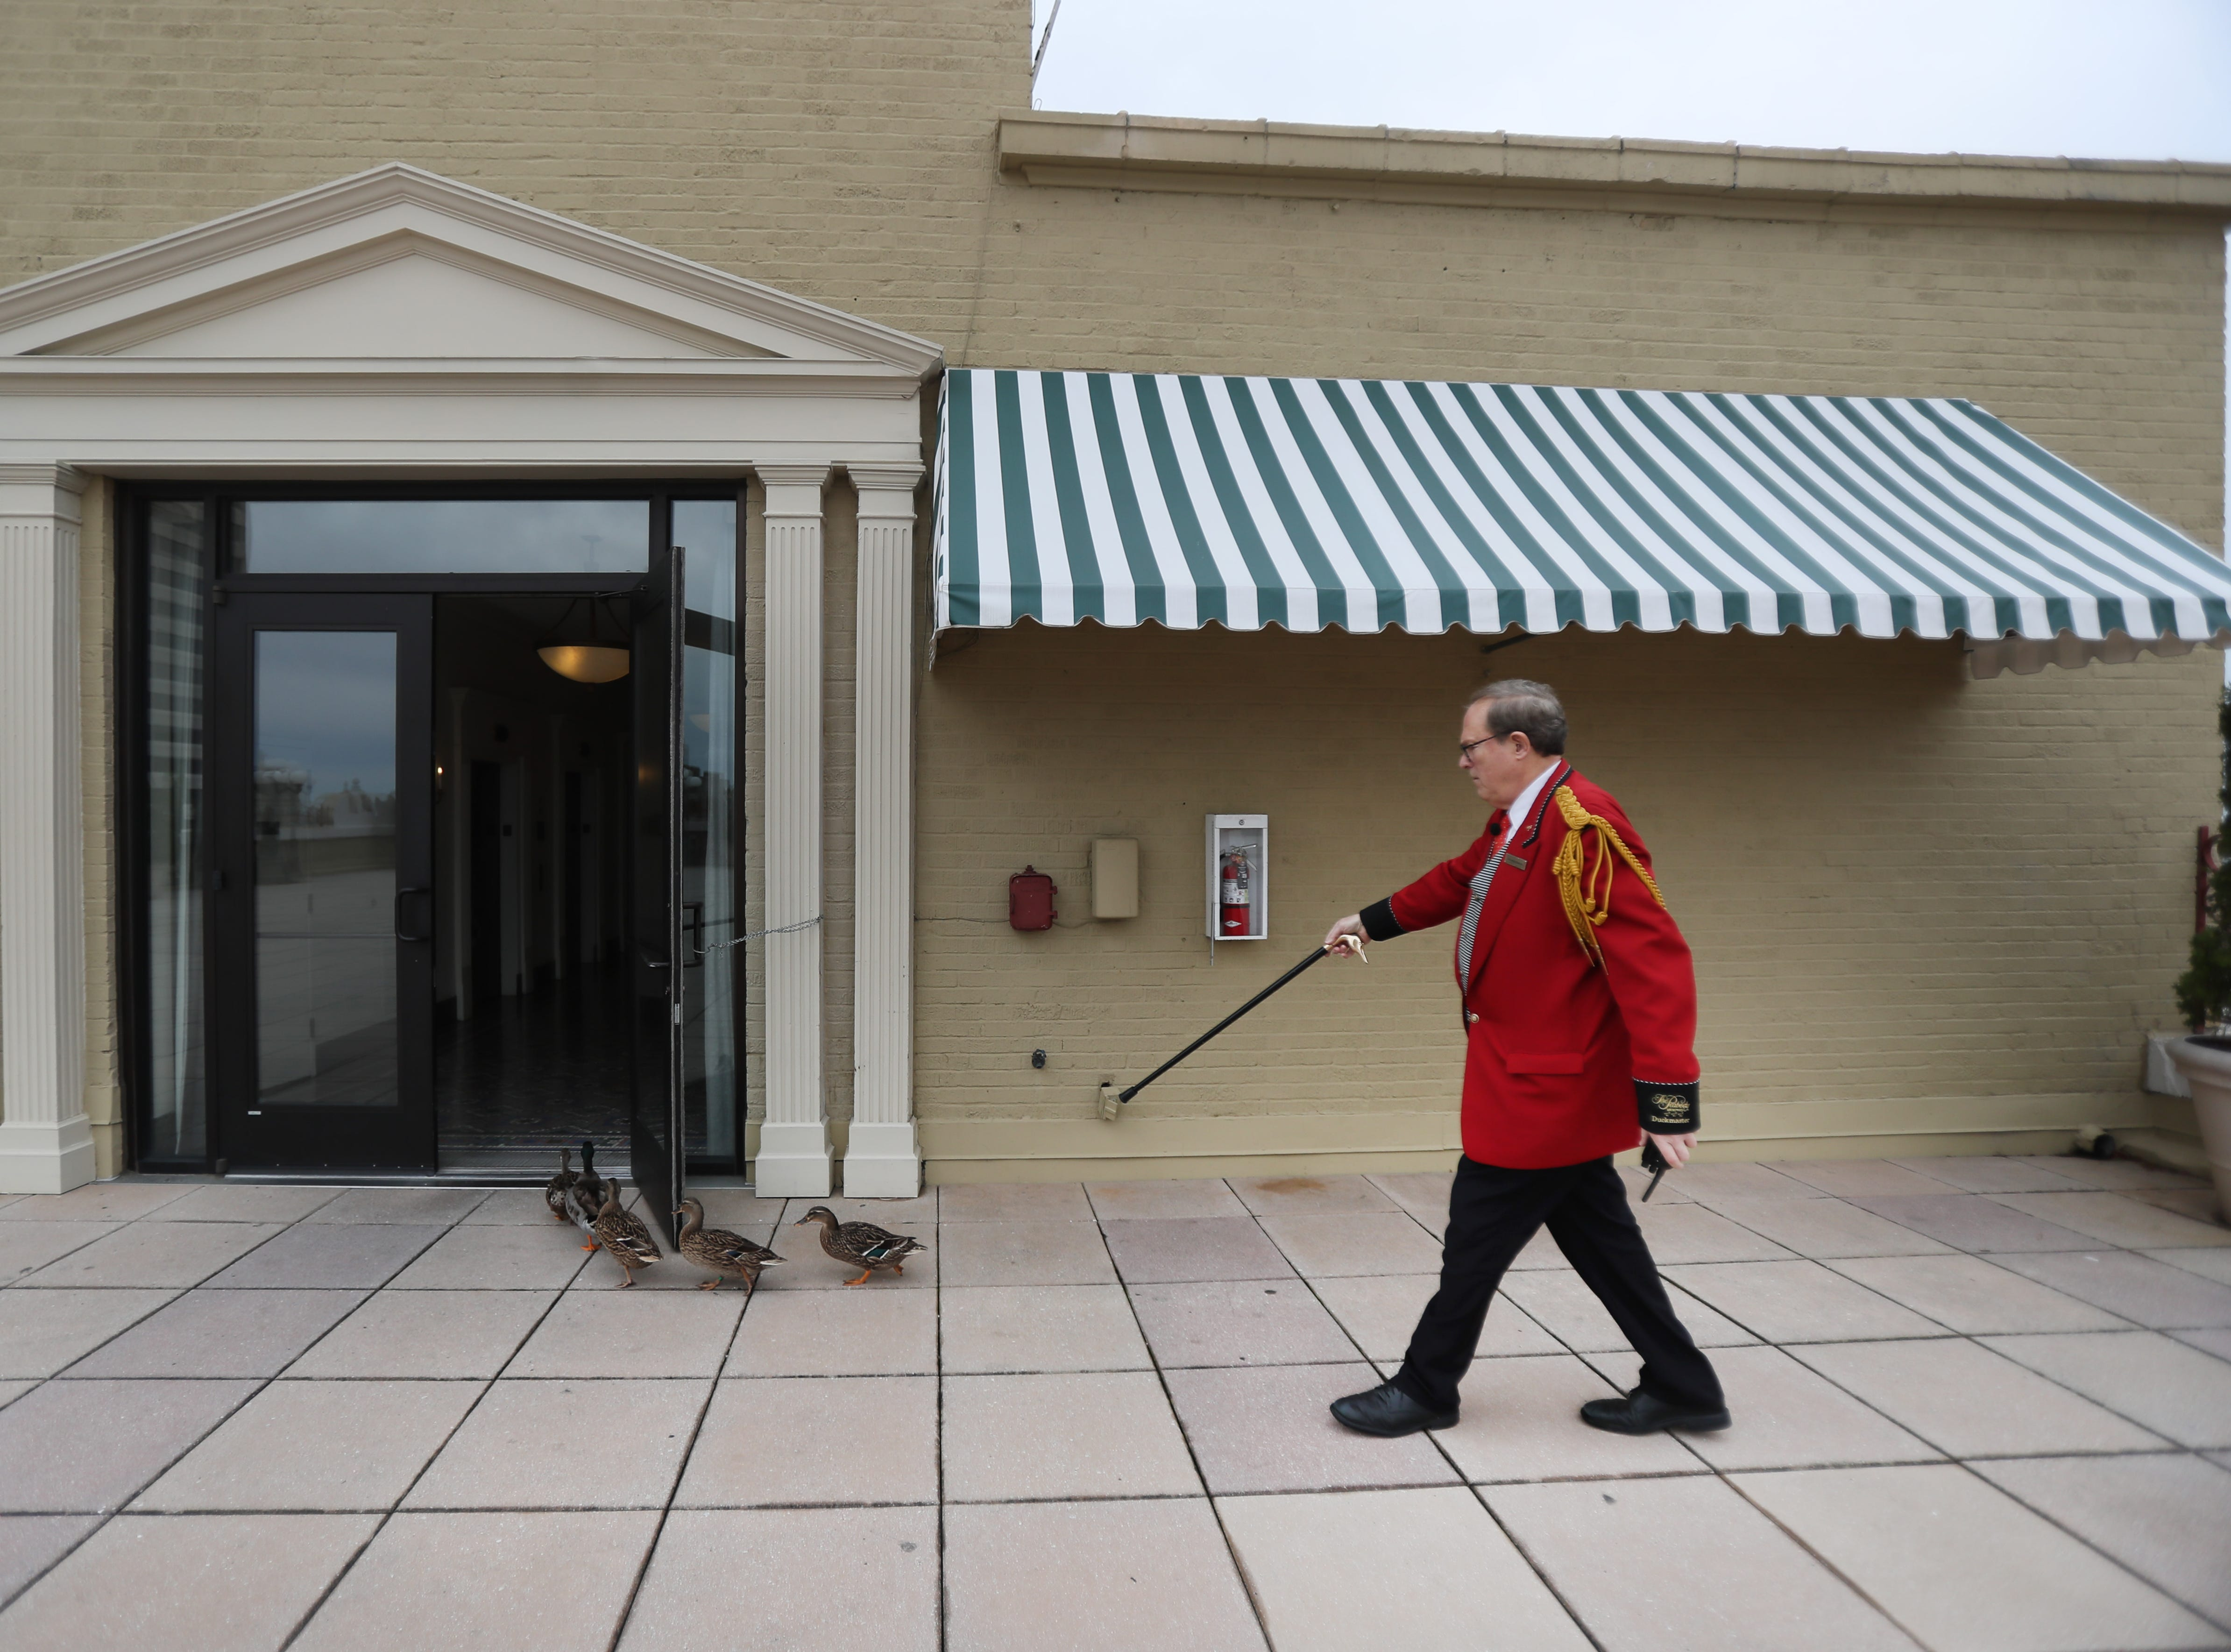 Doug Weatherford, Duckmaster at the Peabody Hotel leads his duck troop from the roof of the hotel to the main lobby at the iconic downtown Memphis building on Thursday, Feb. 21, 2019.